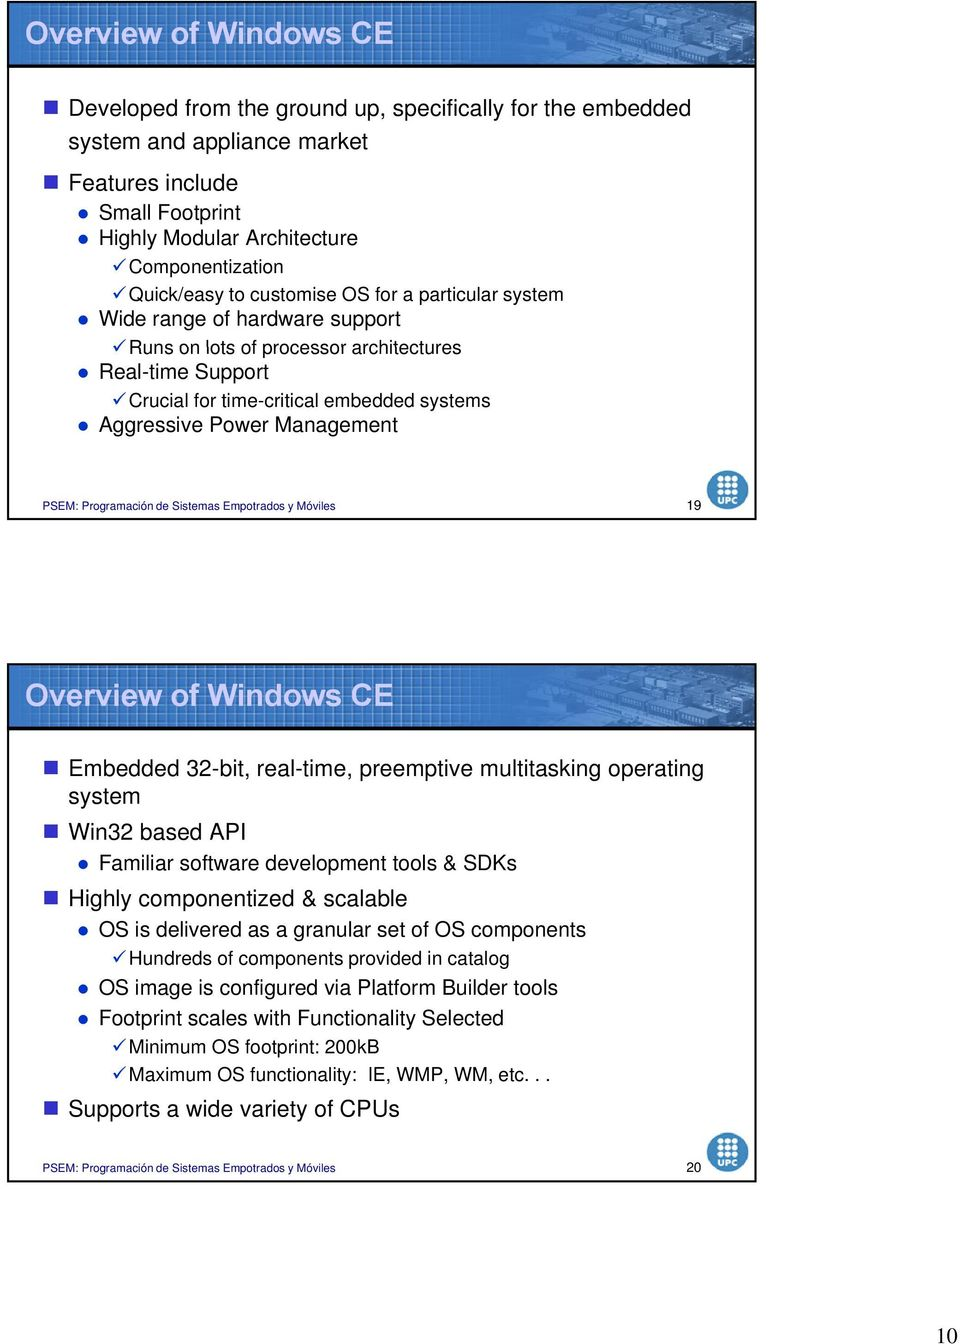 19 Overview of Windows CE Embedded 32-bit, real-time, preemptive multitasking operating system Win32 based API Familiar software development tools & SDKs Highly componentized & scalable OS is